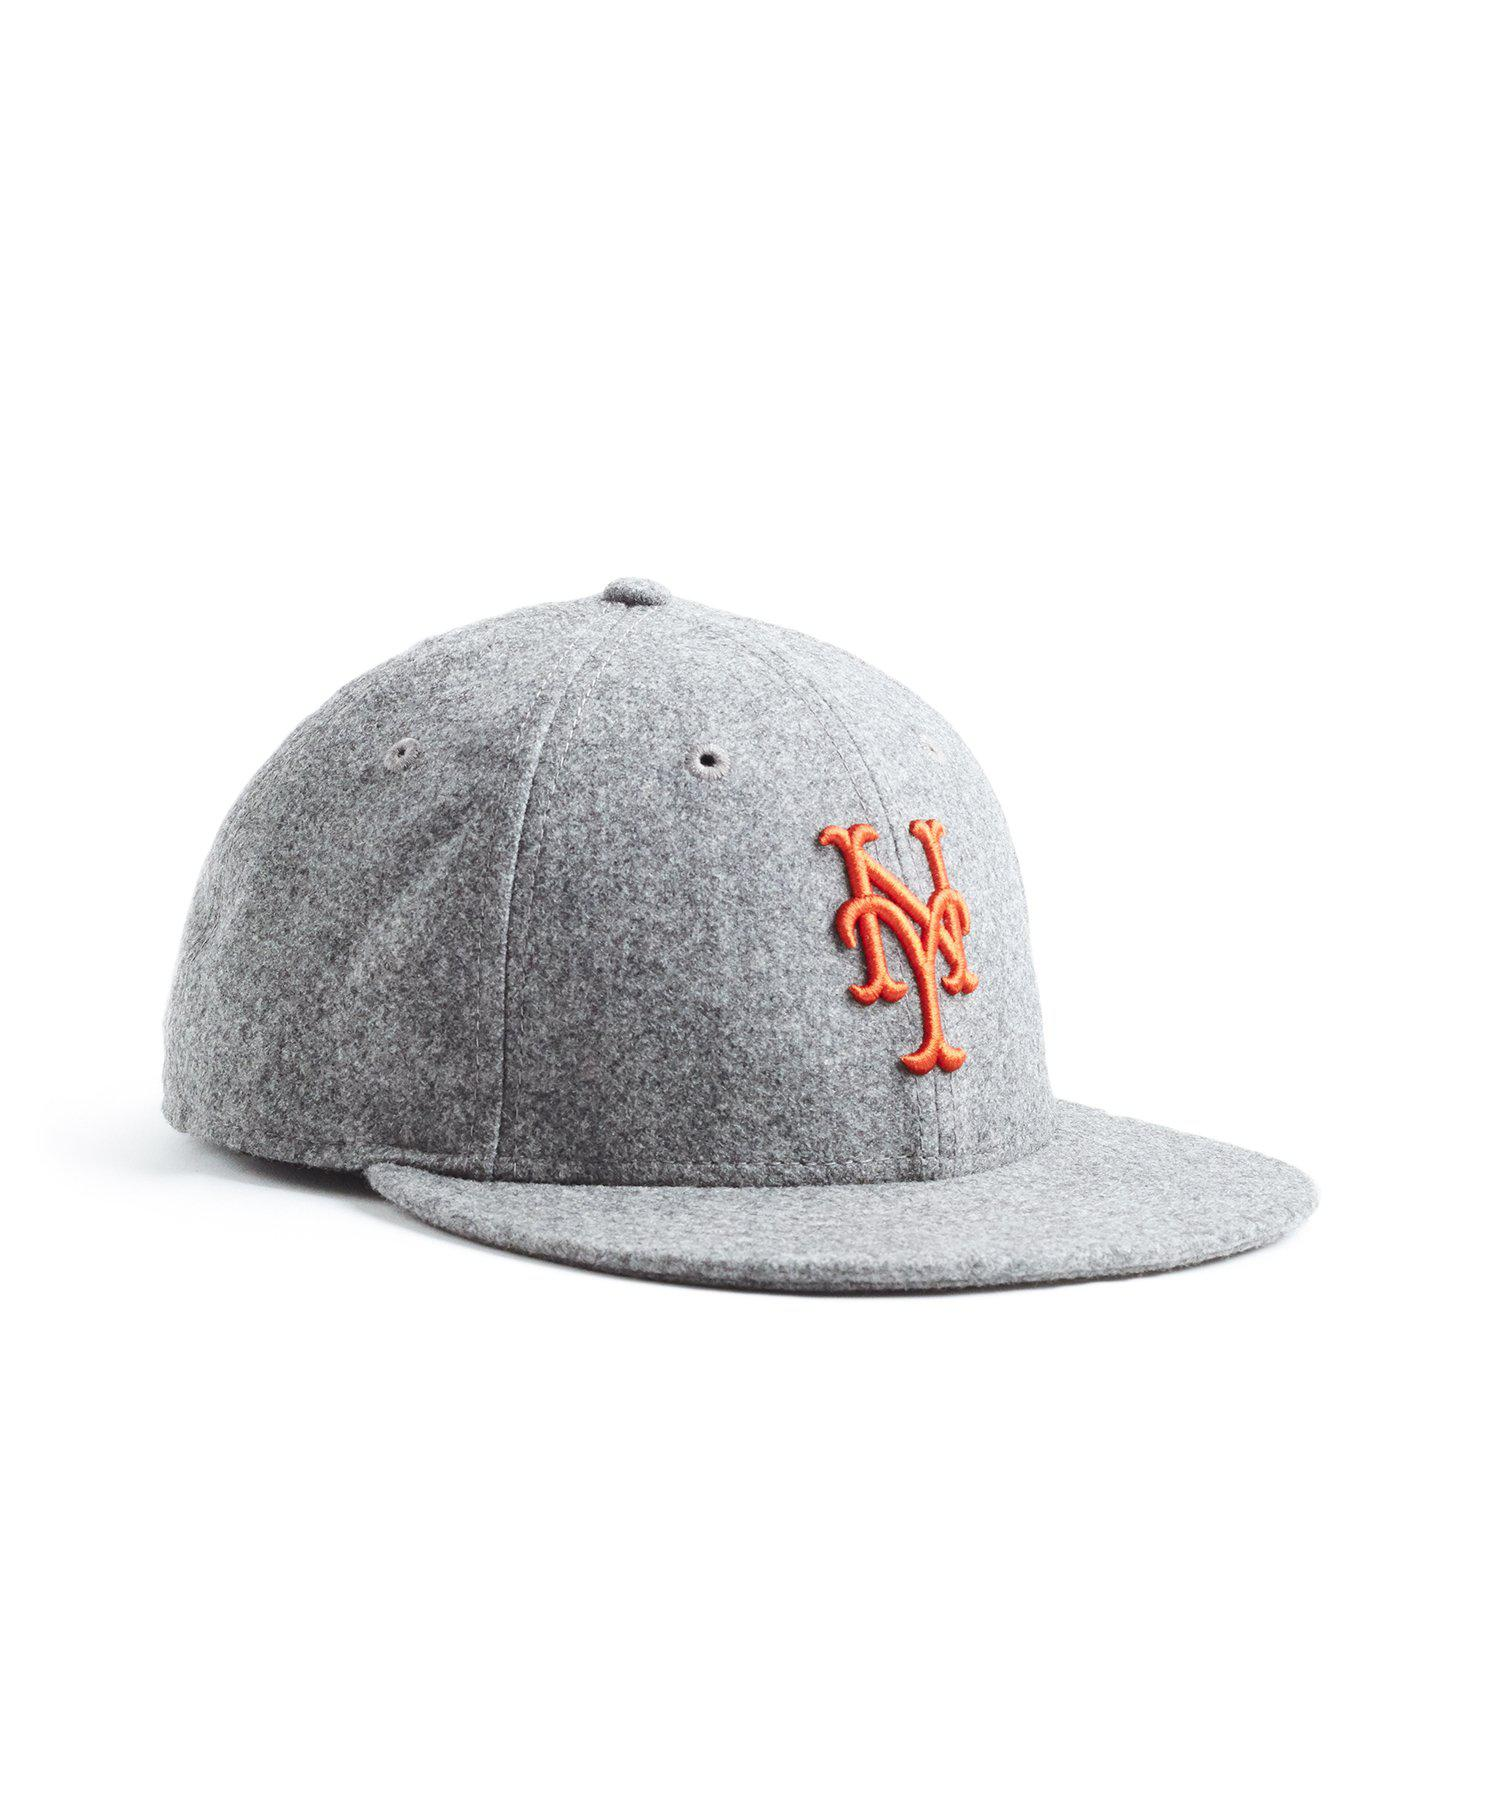 61961c01322c9 NEW ERA HATS. Men s Gray Exclusive Ny Mets Hat In Italian Barberis Wool  Flannel